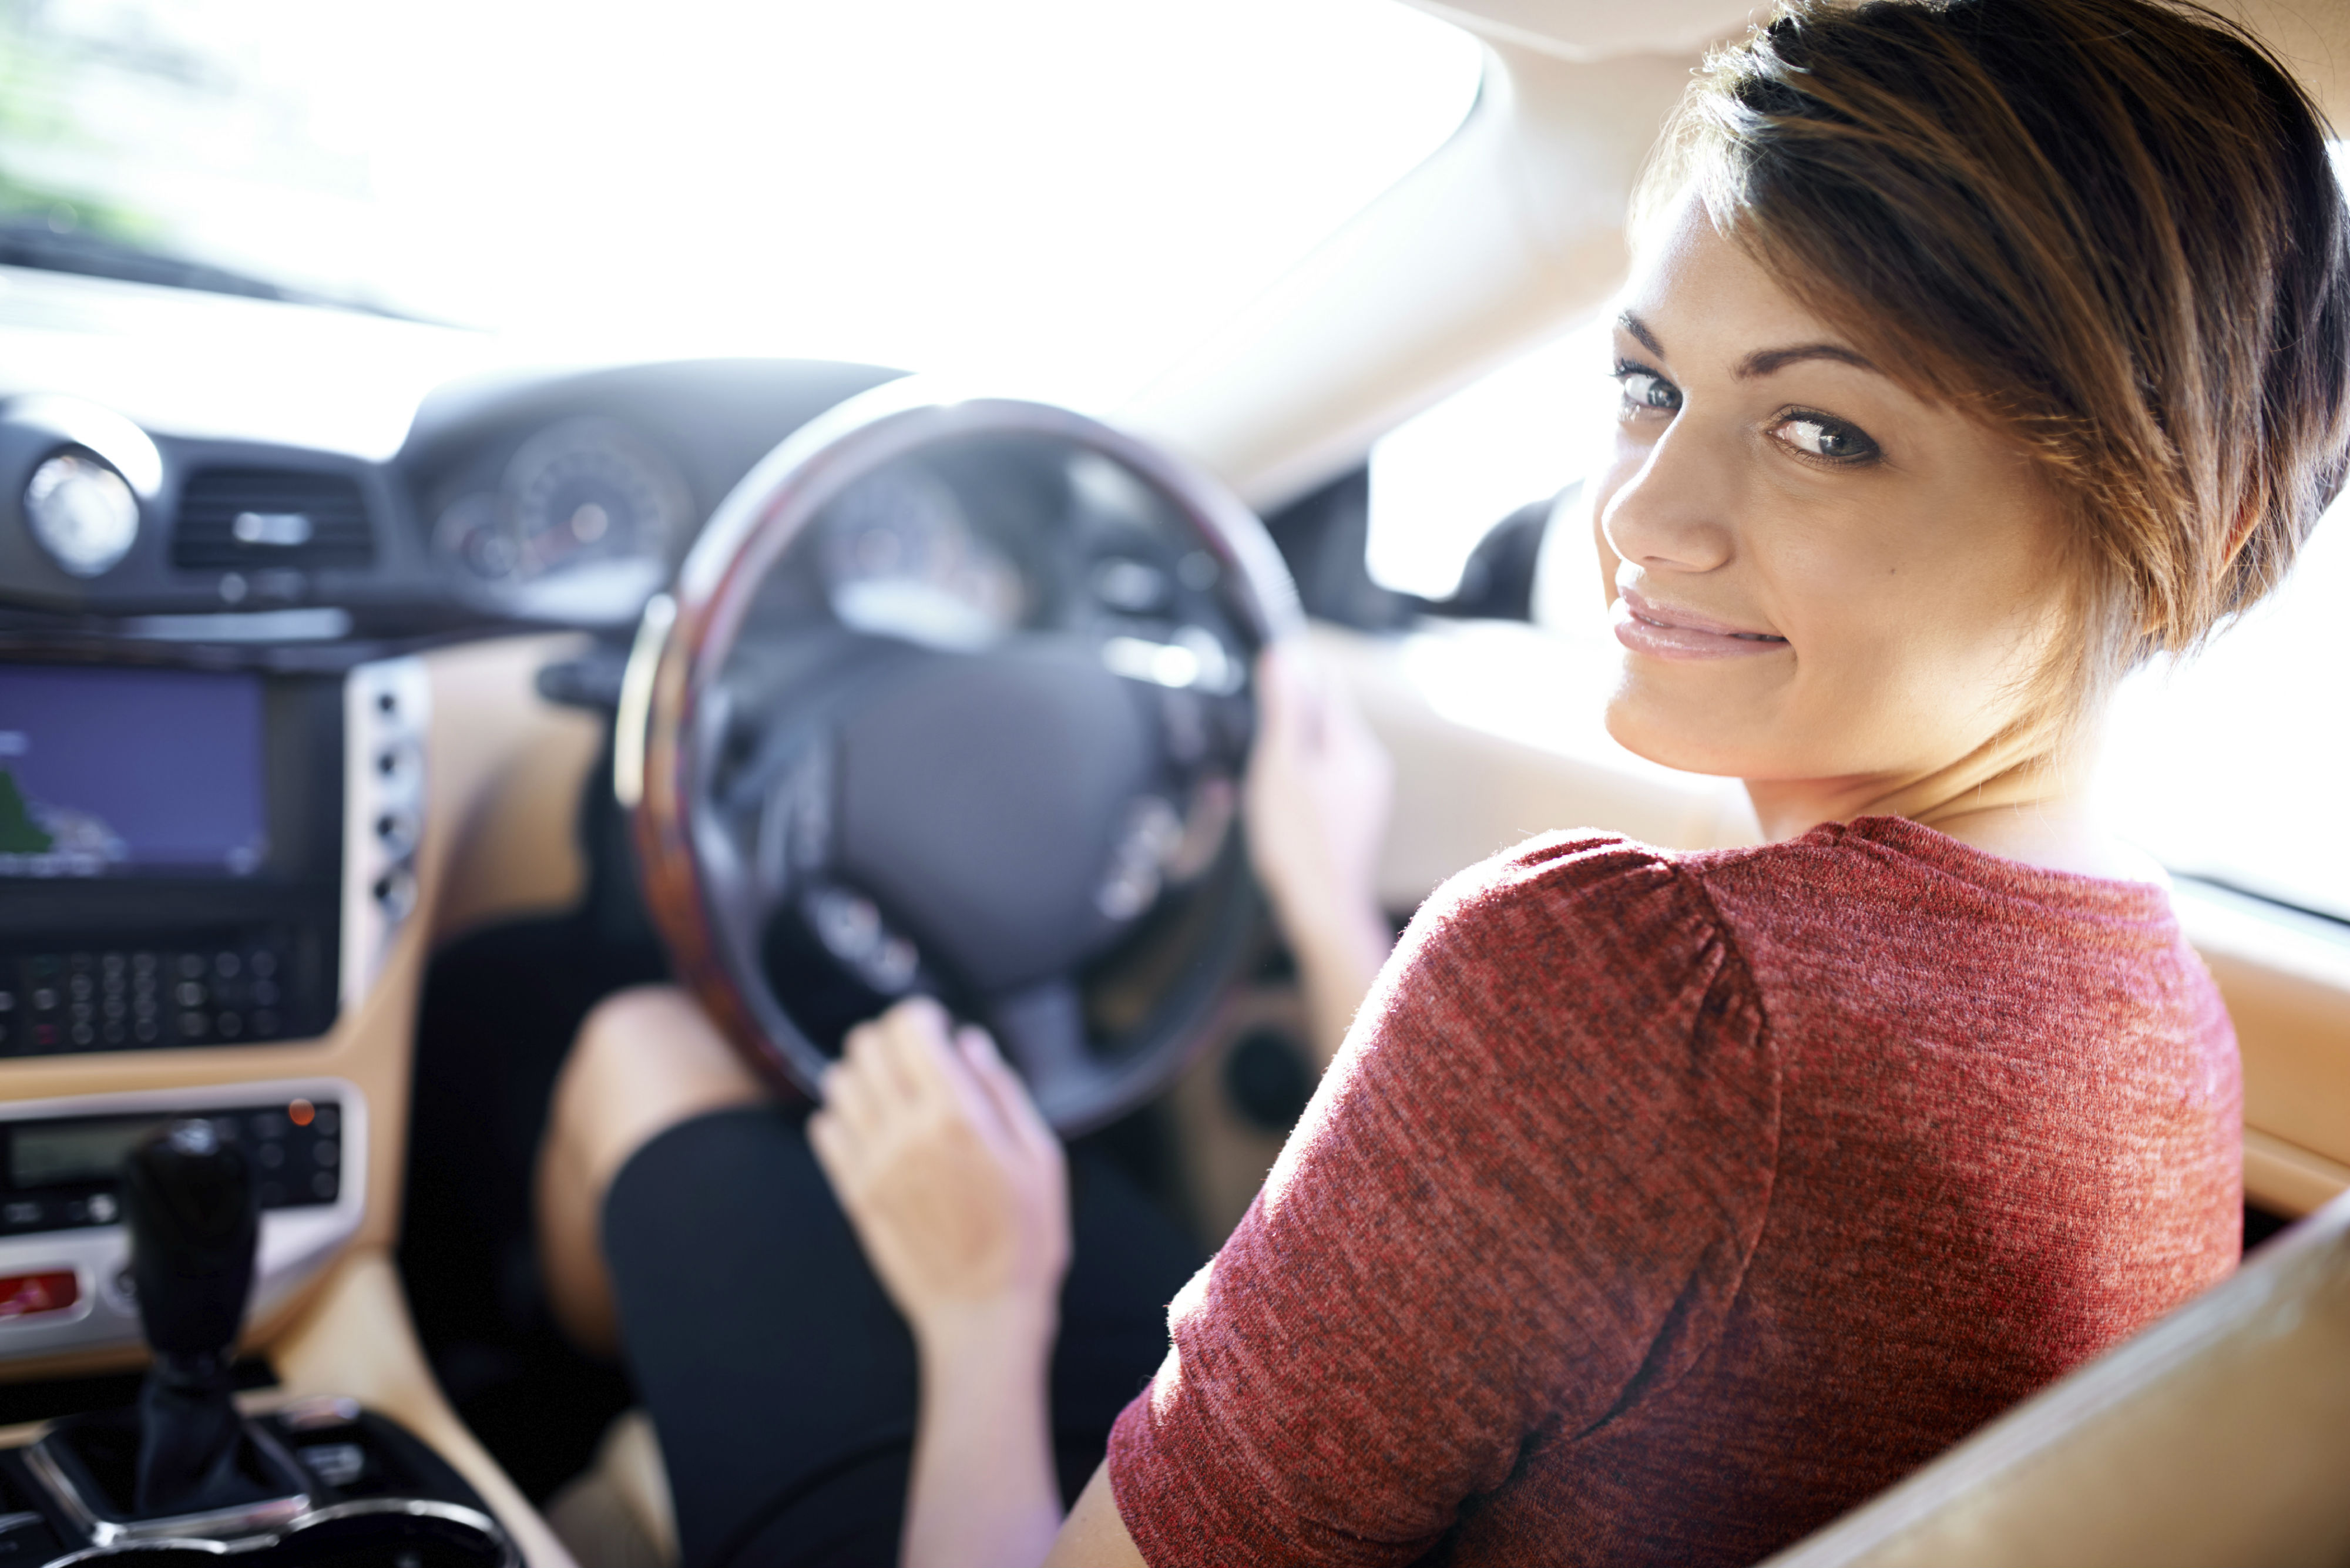 Back pain: guide to sitting comfortably when driving, with advice from the British Chiropractic Association